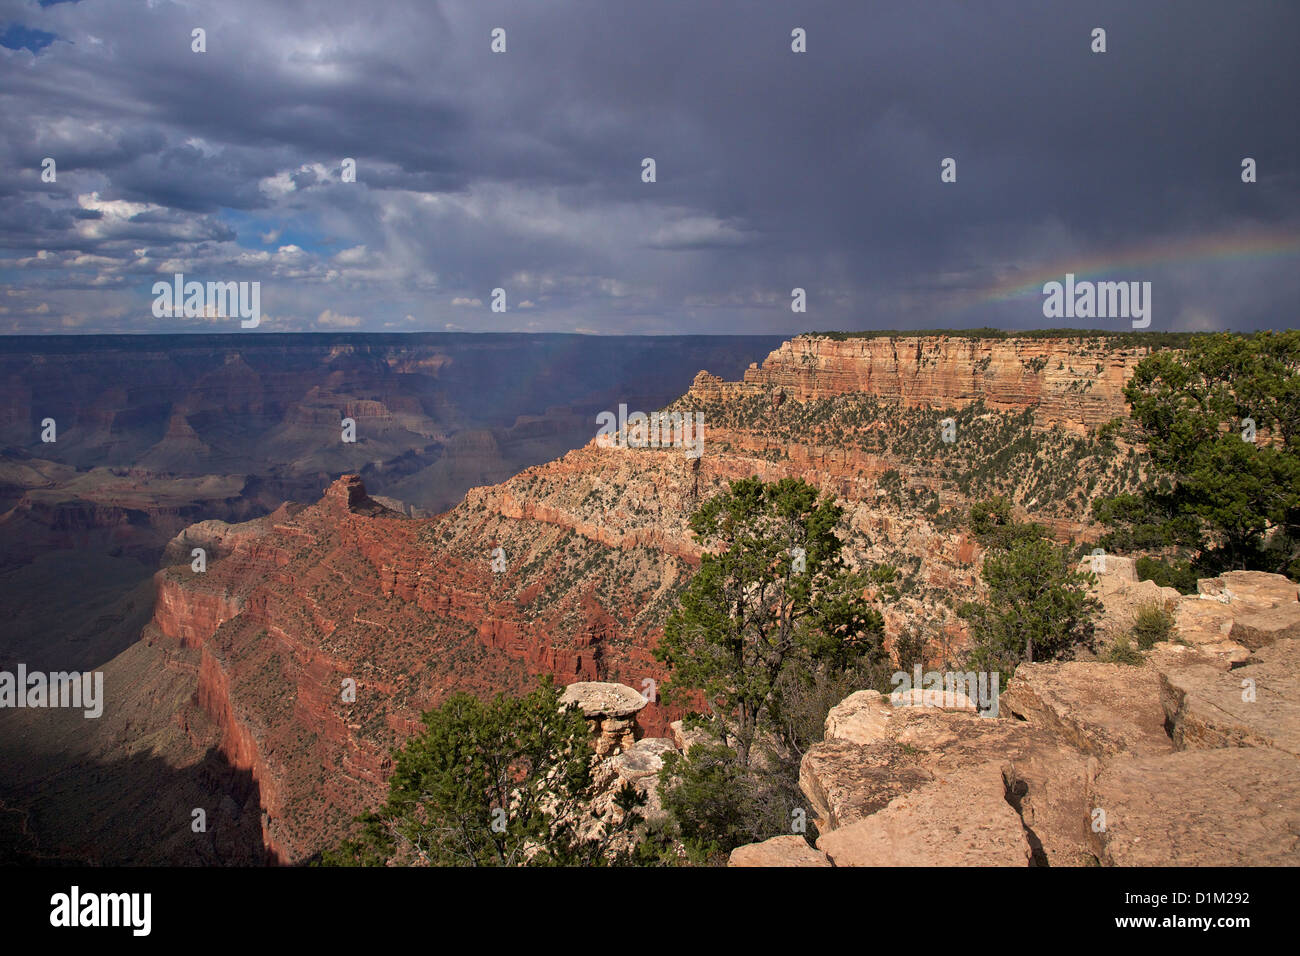 Stormy weather over South Kaibab Trail, South Rim, Grand Canyon National Park, Arizona, USA - Stock Image